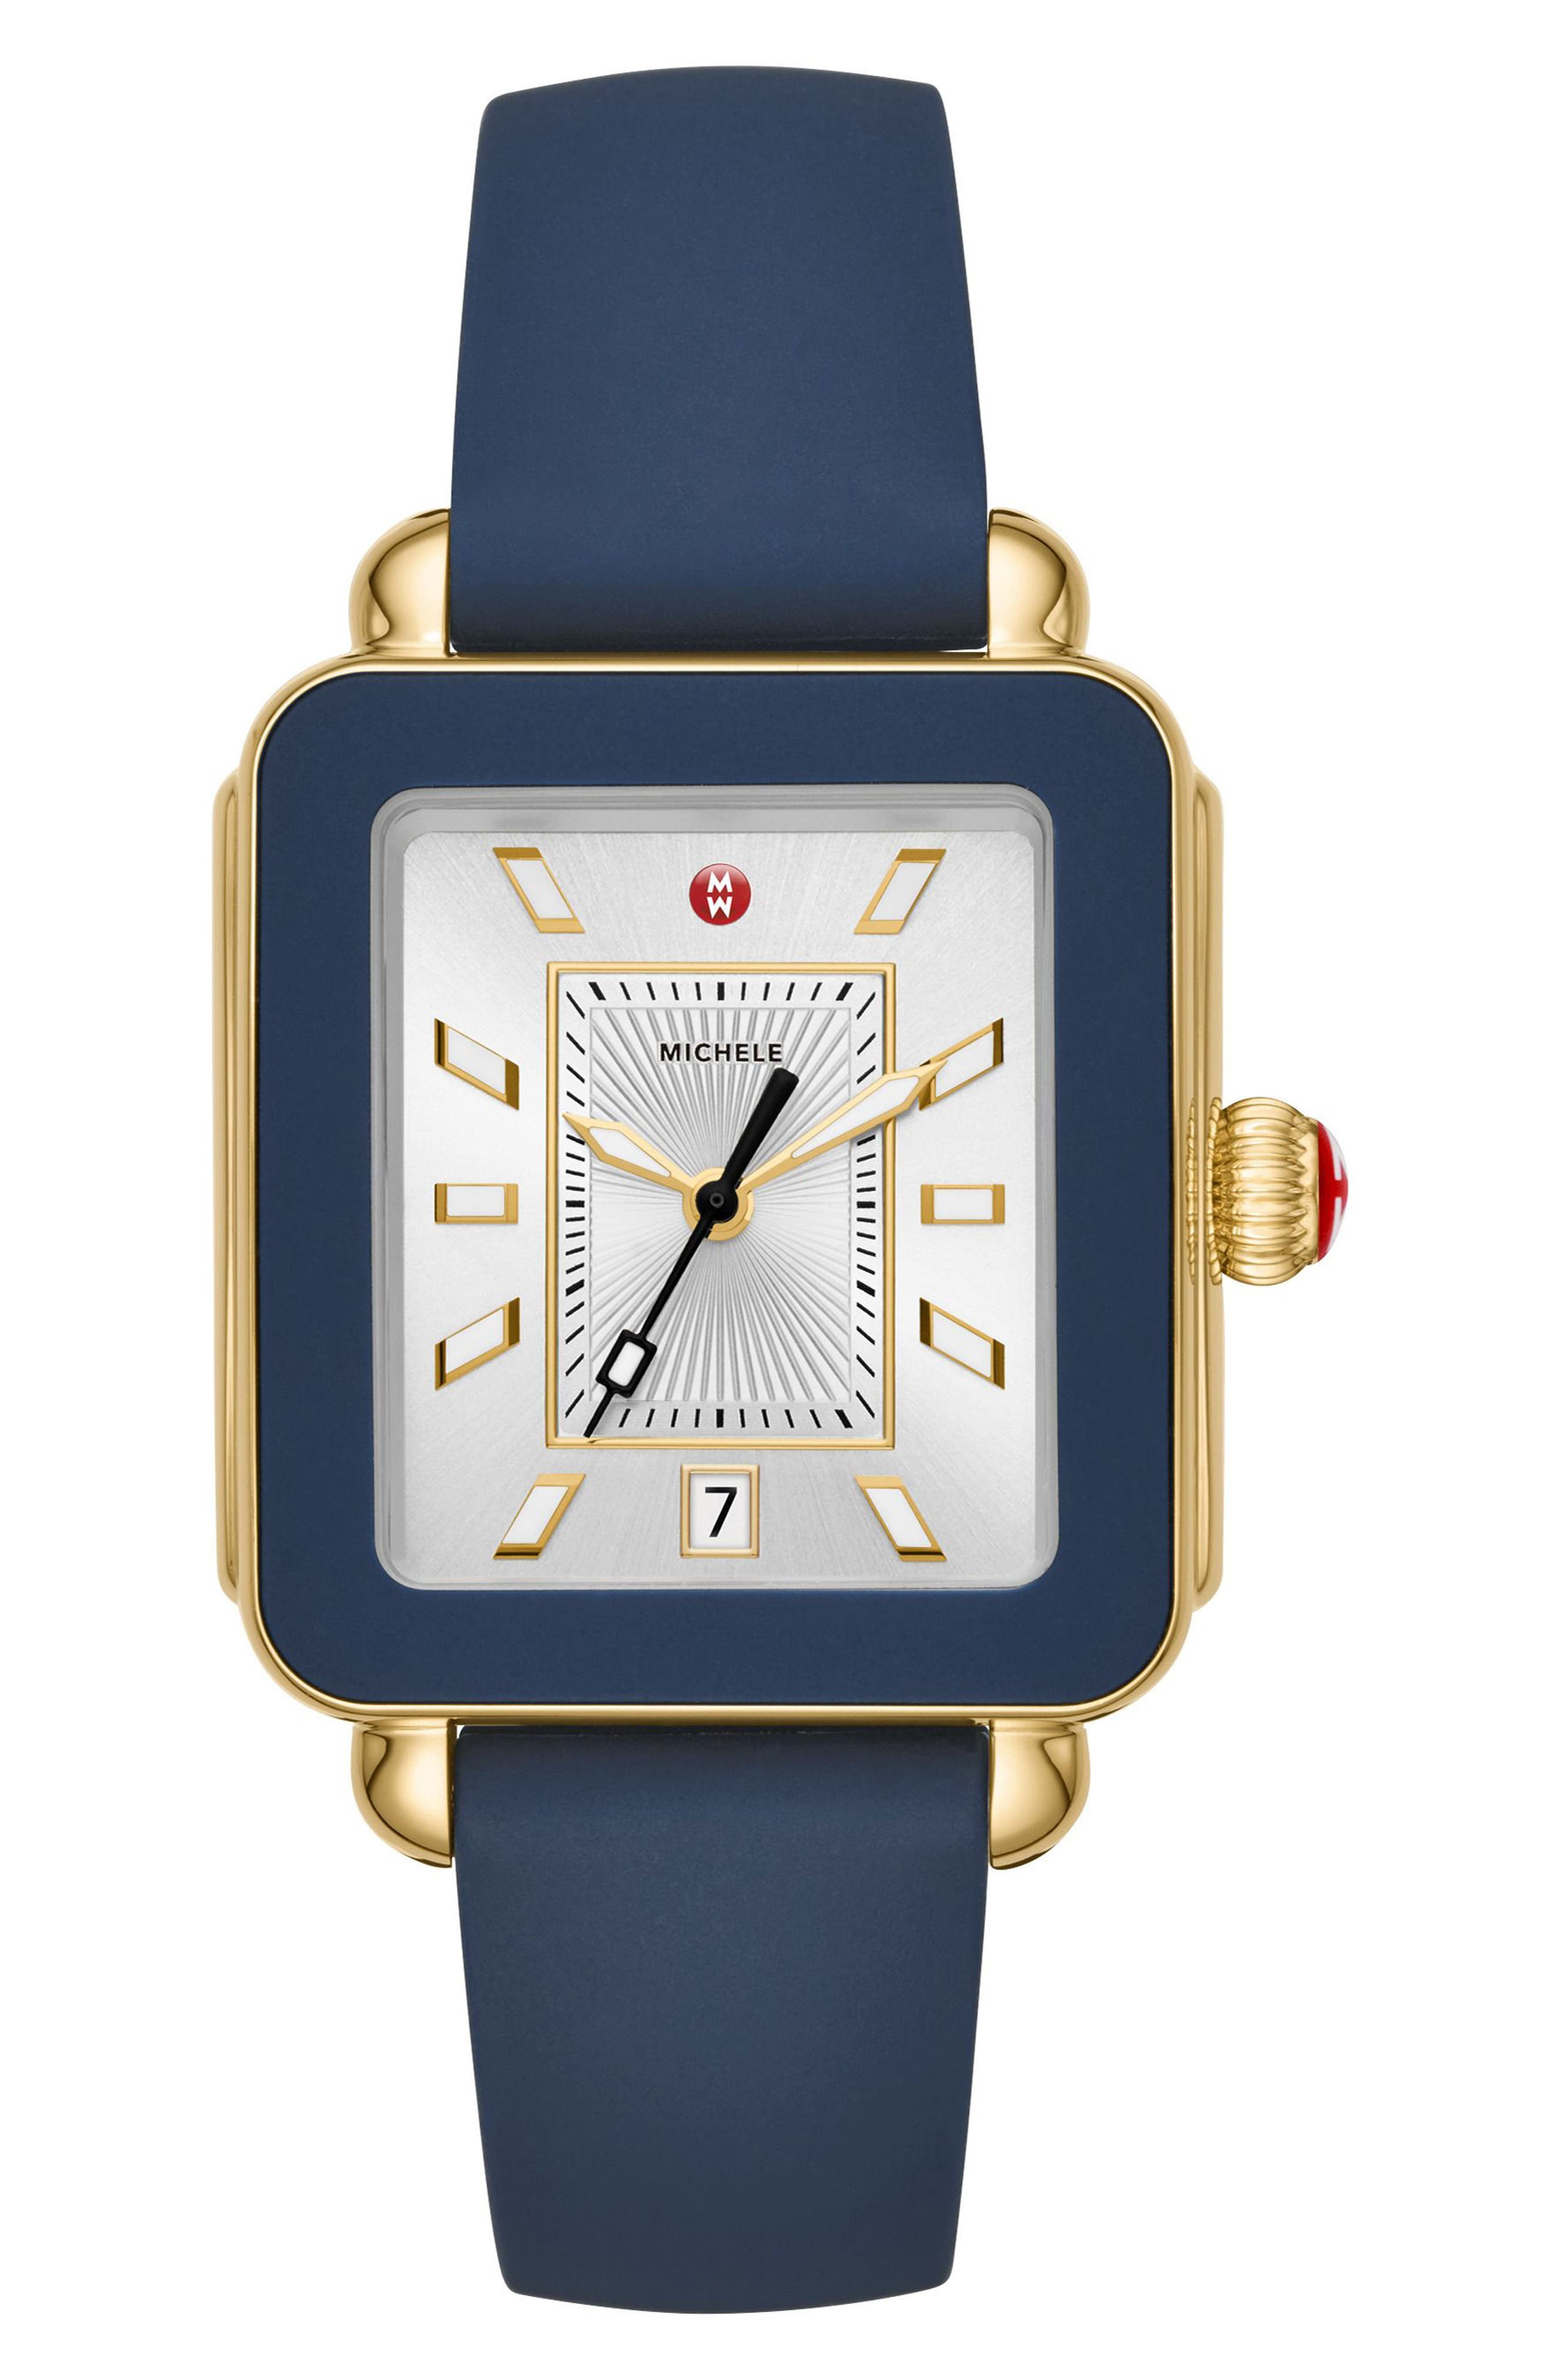 MICHELE, Deco Sport Watch Head & Silicone Strap Watch, 34mm x 36mm, Main thumbnail 1, color, BLUE/ SILVER/ GOLD